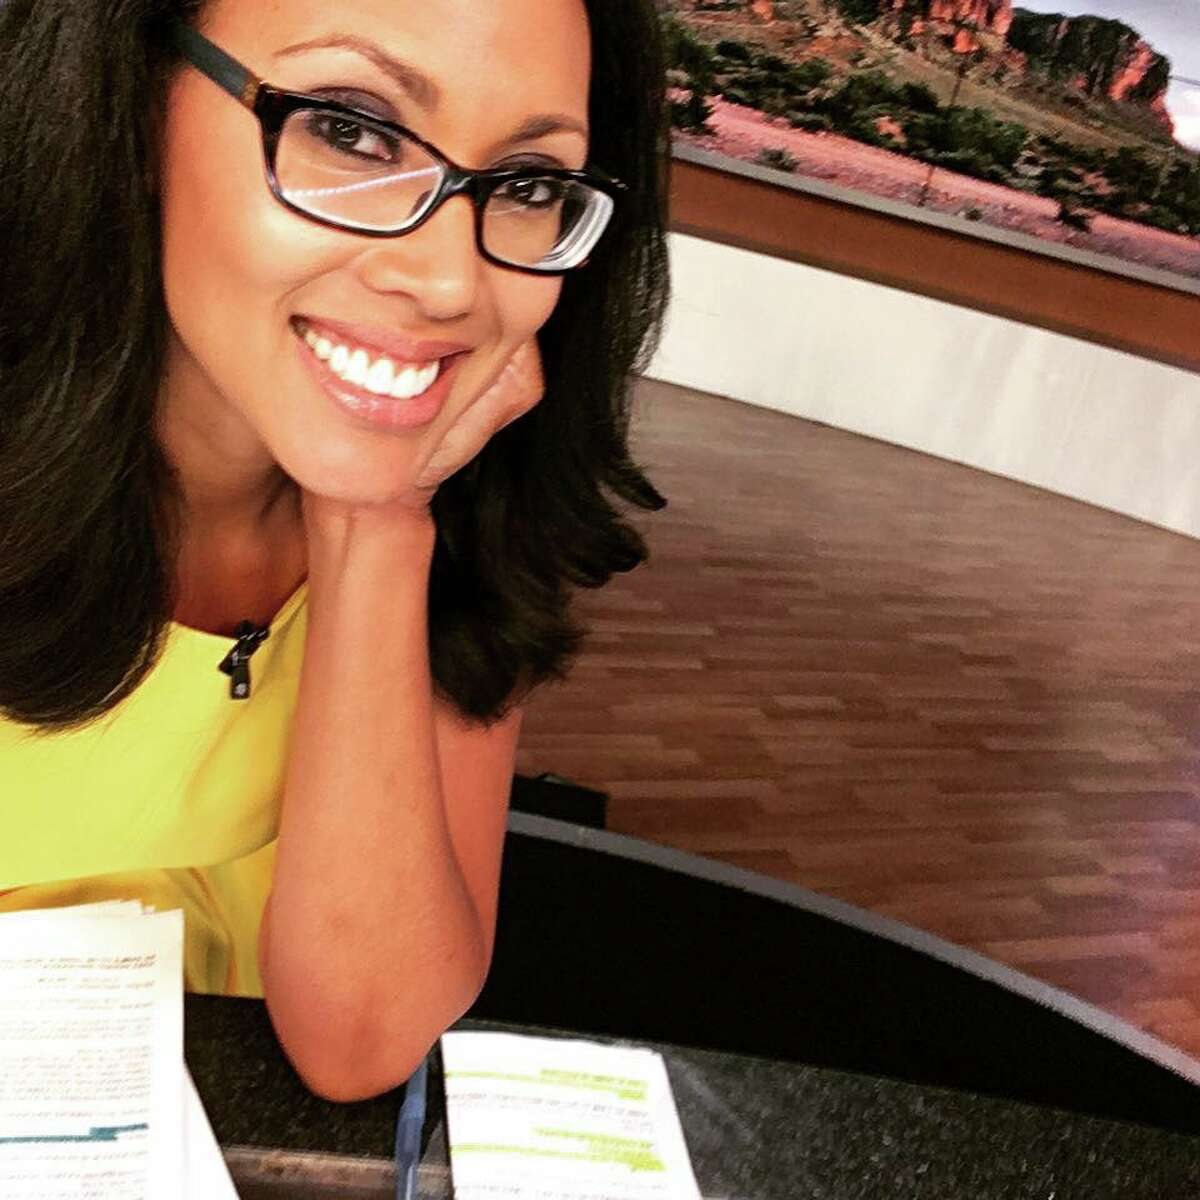 PHOTOS: Houston TV anchors and reporters on the move in 2018  Lina De Florias will join KRIV in September as a weekday morning anchor. She previously worked as an anchor and reporter at KTVK/KPHO in Phoenix, Arizona.   >>> Several other local TV personalities made moves this year